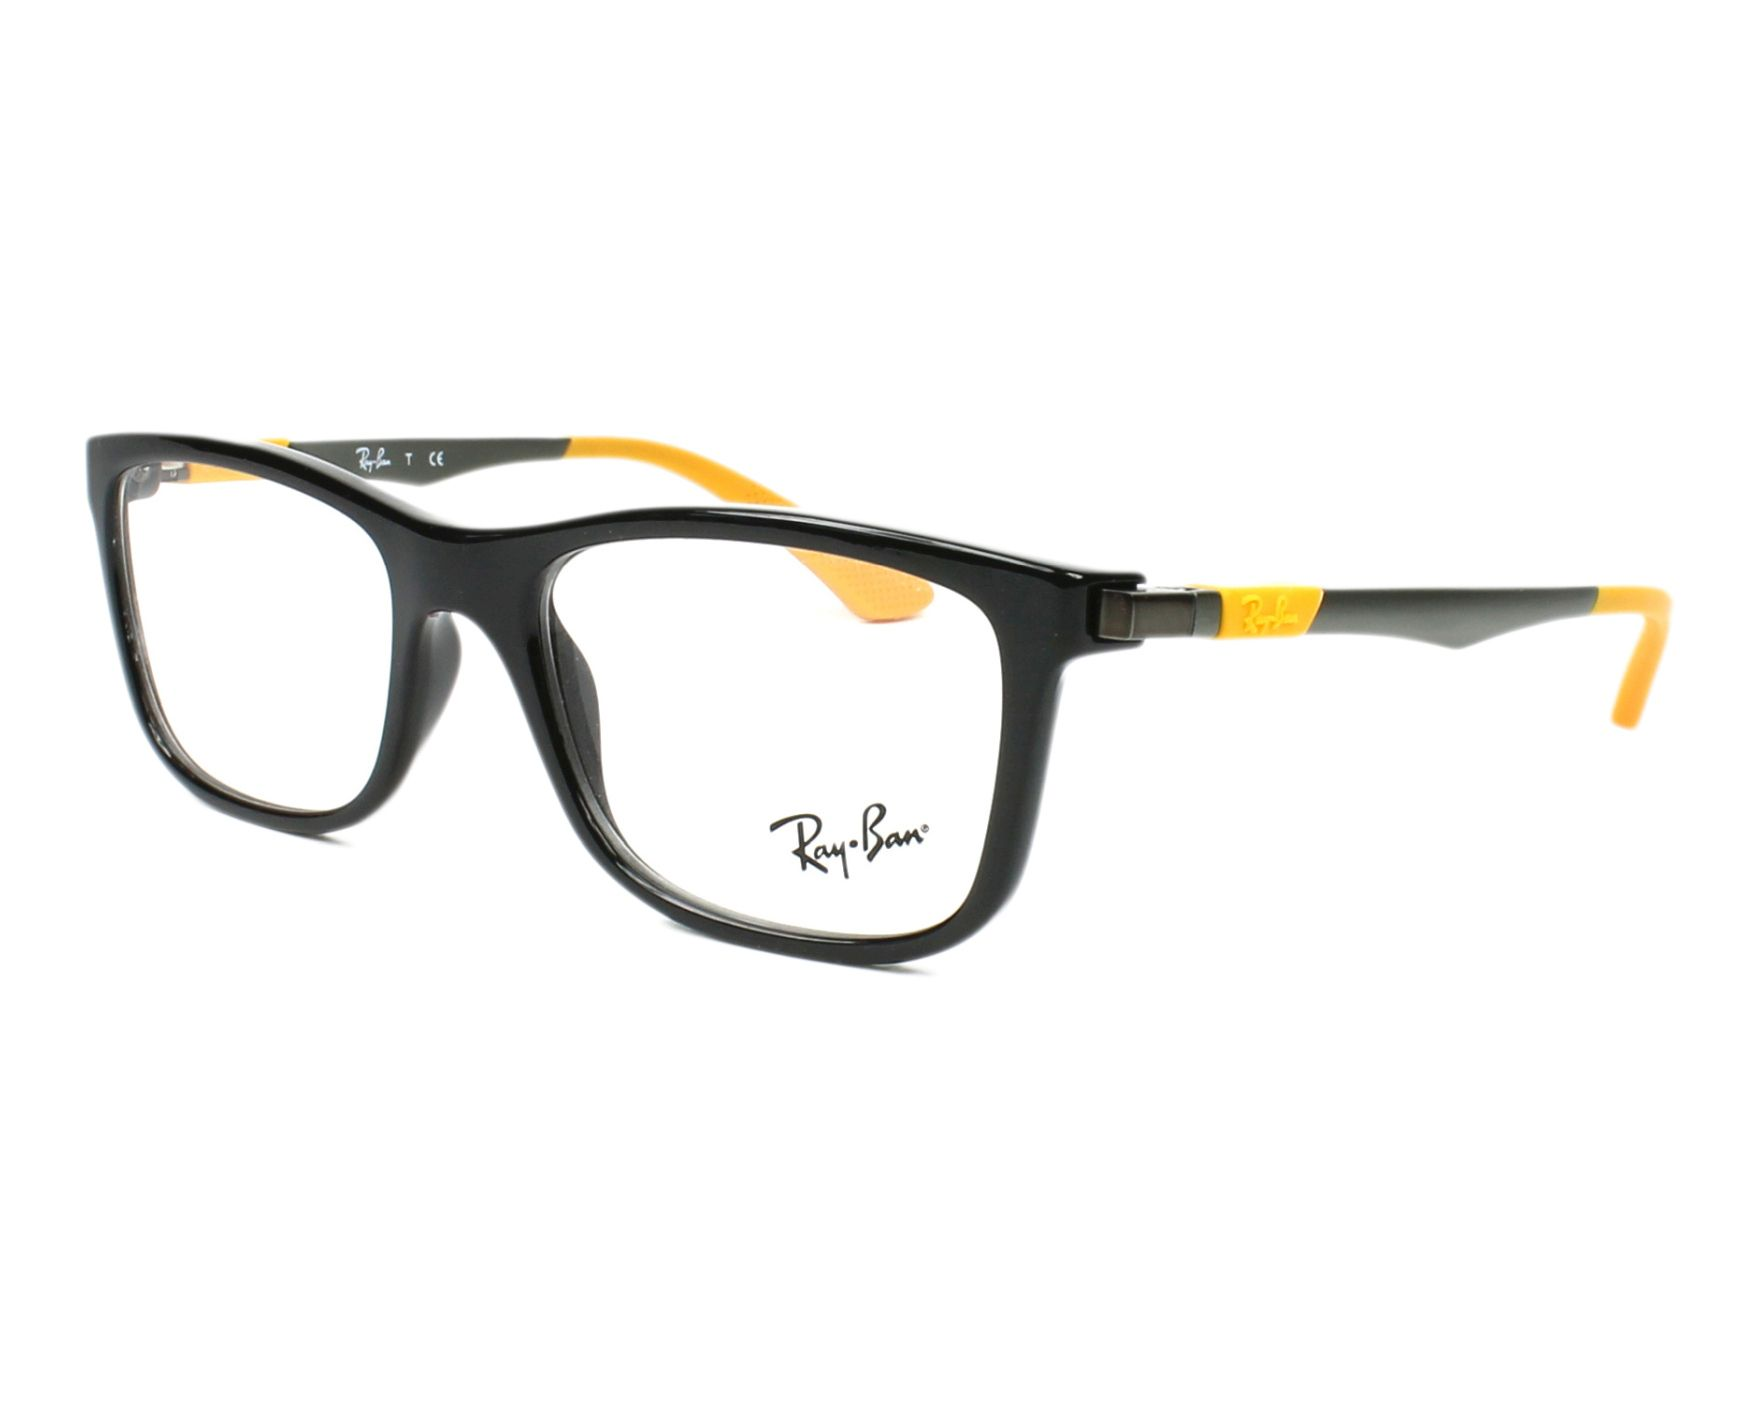 a39fd31ed95 ... coupon eyeglasses ray ban ry 1549 3733 48 16 black brown profile view  c8726 64b36